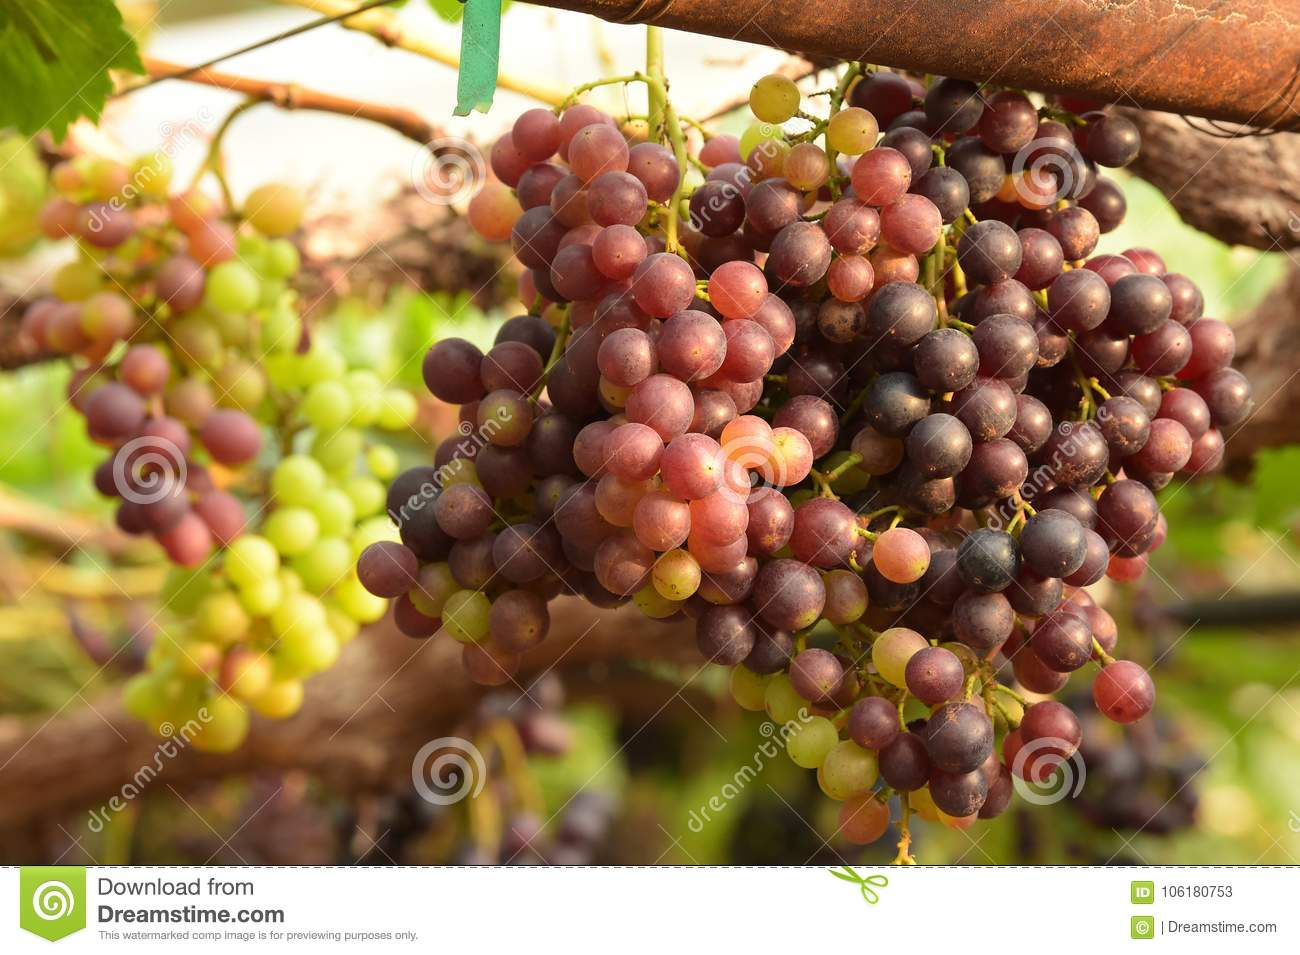 Red ripe grapes stock image. Image of beauty, growth - 106180753